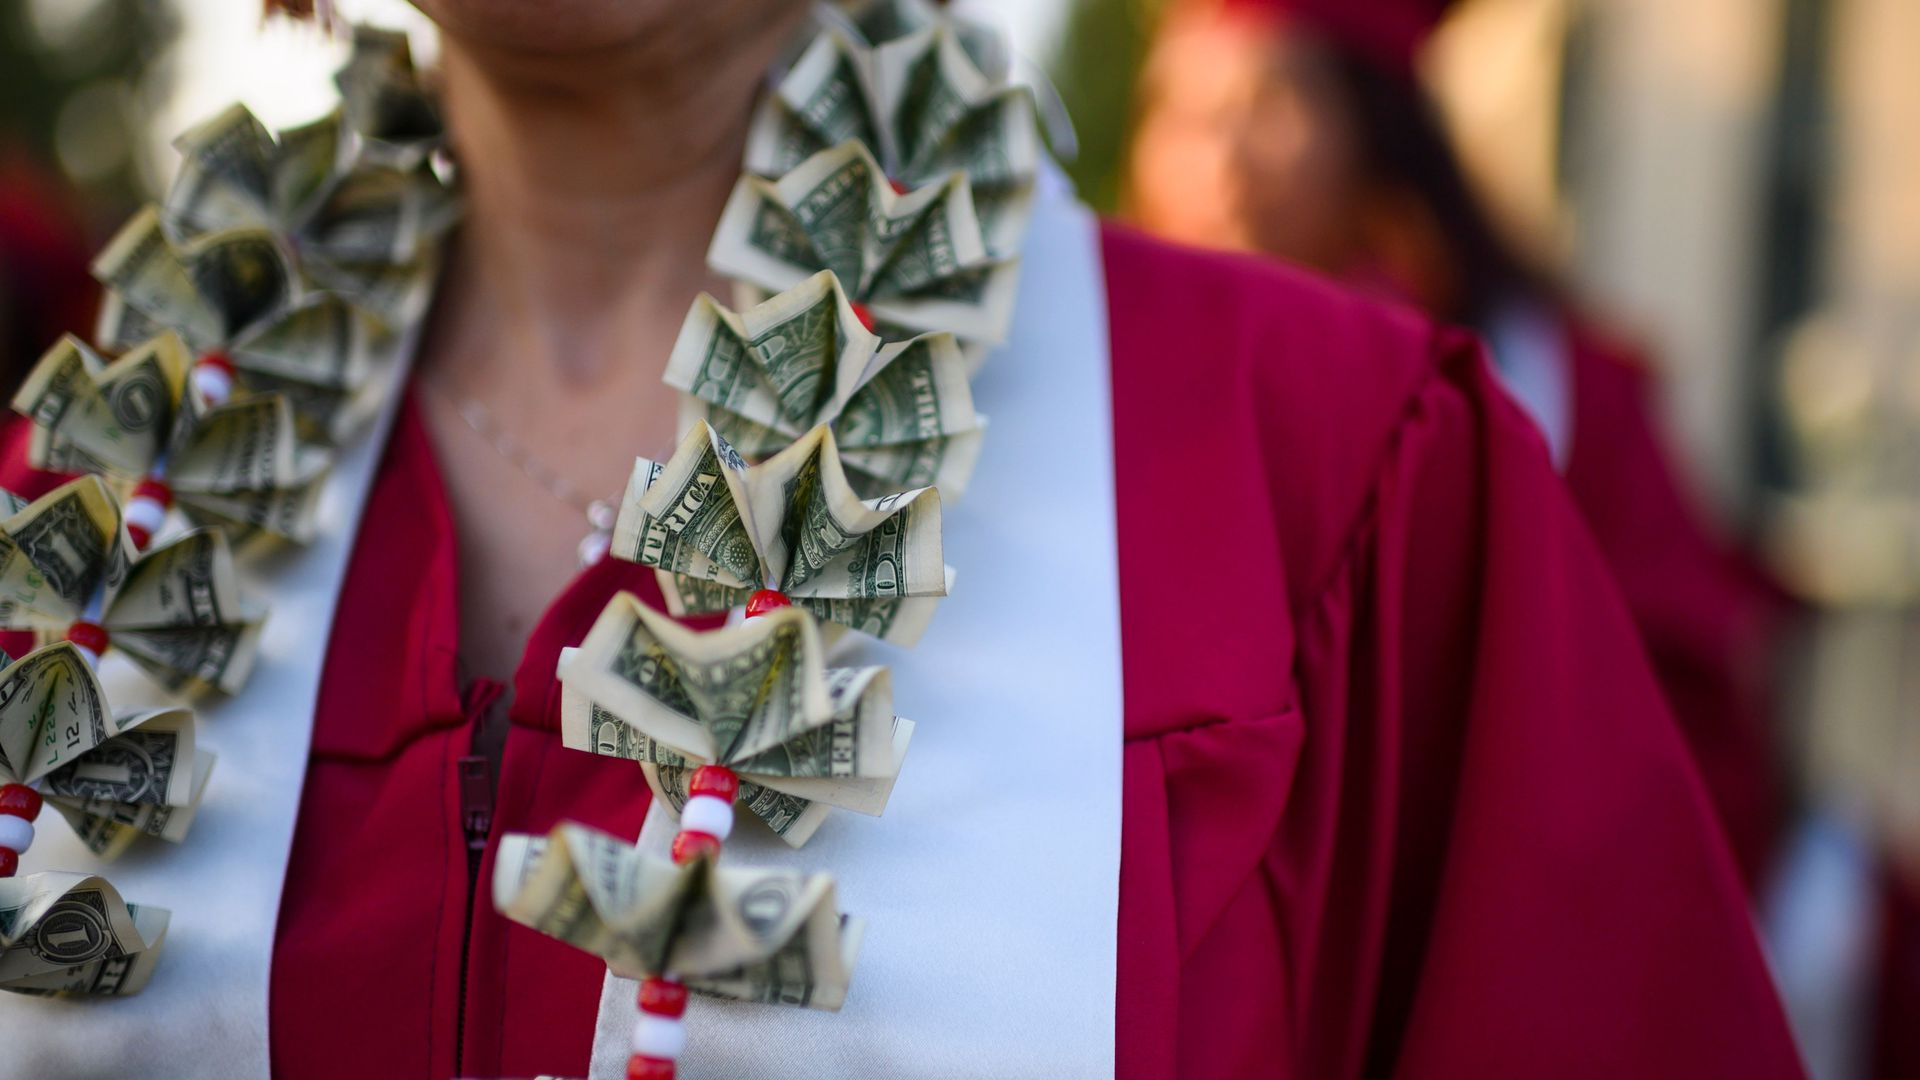 In this image, a woman wears a gown with a sash and folded dollar bills.